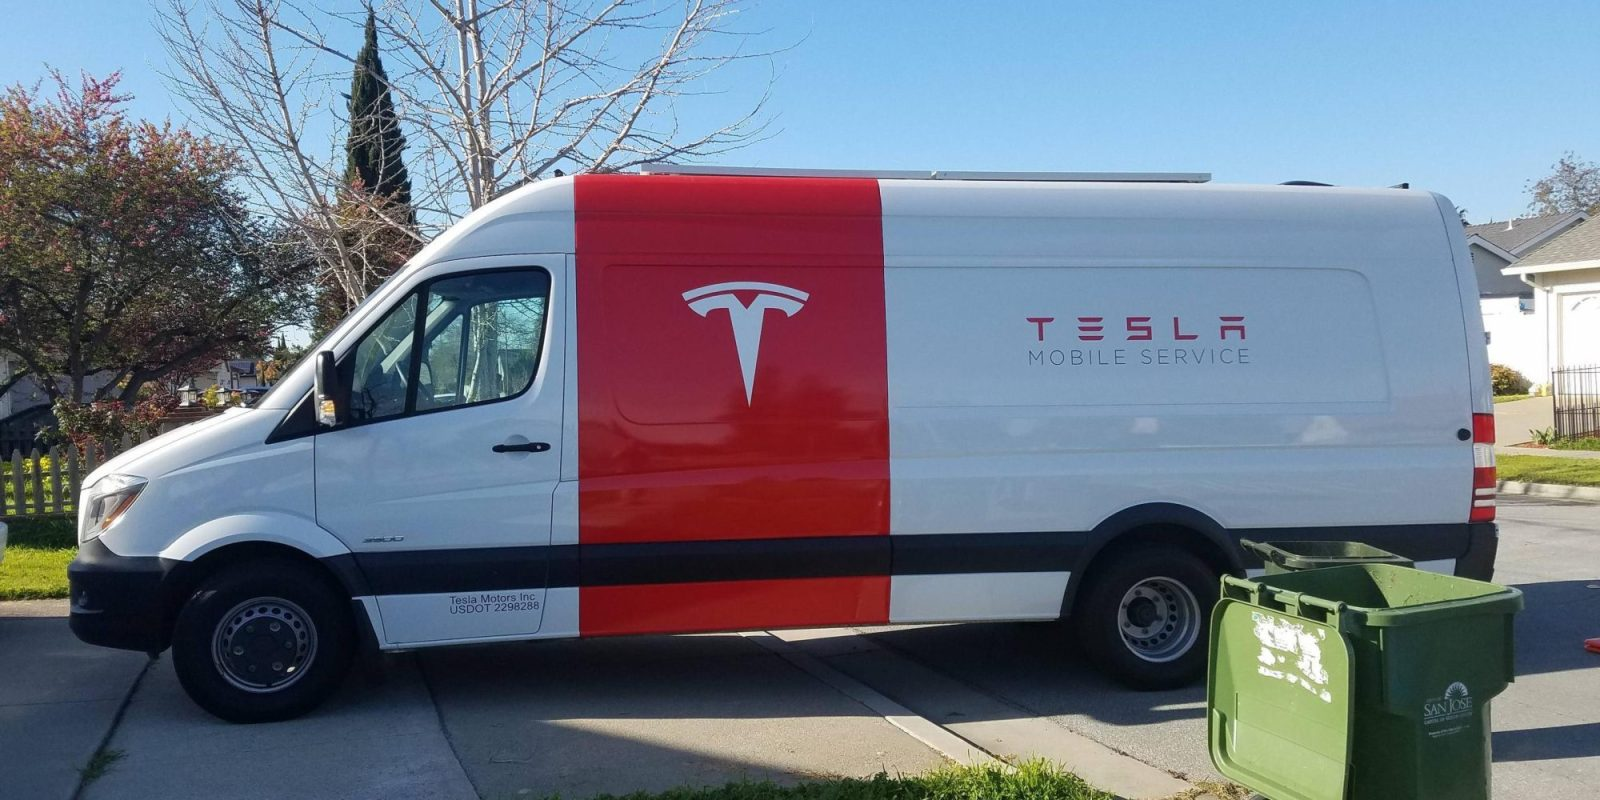 Tesla is launching new all-electric service vehicles based on Model ...